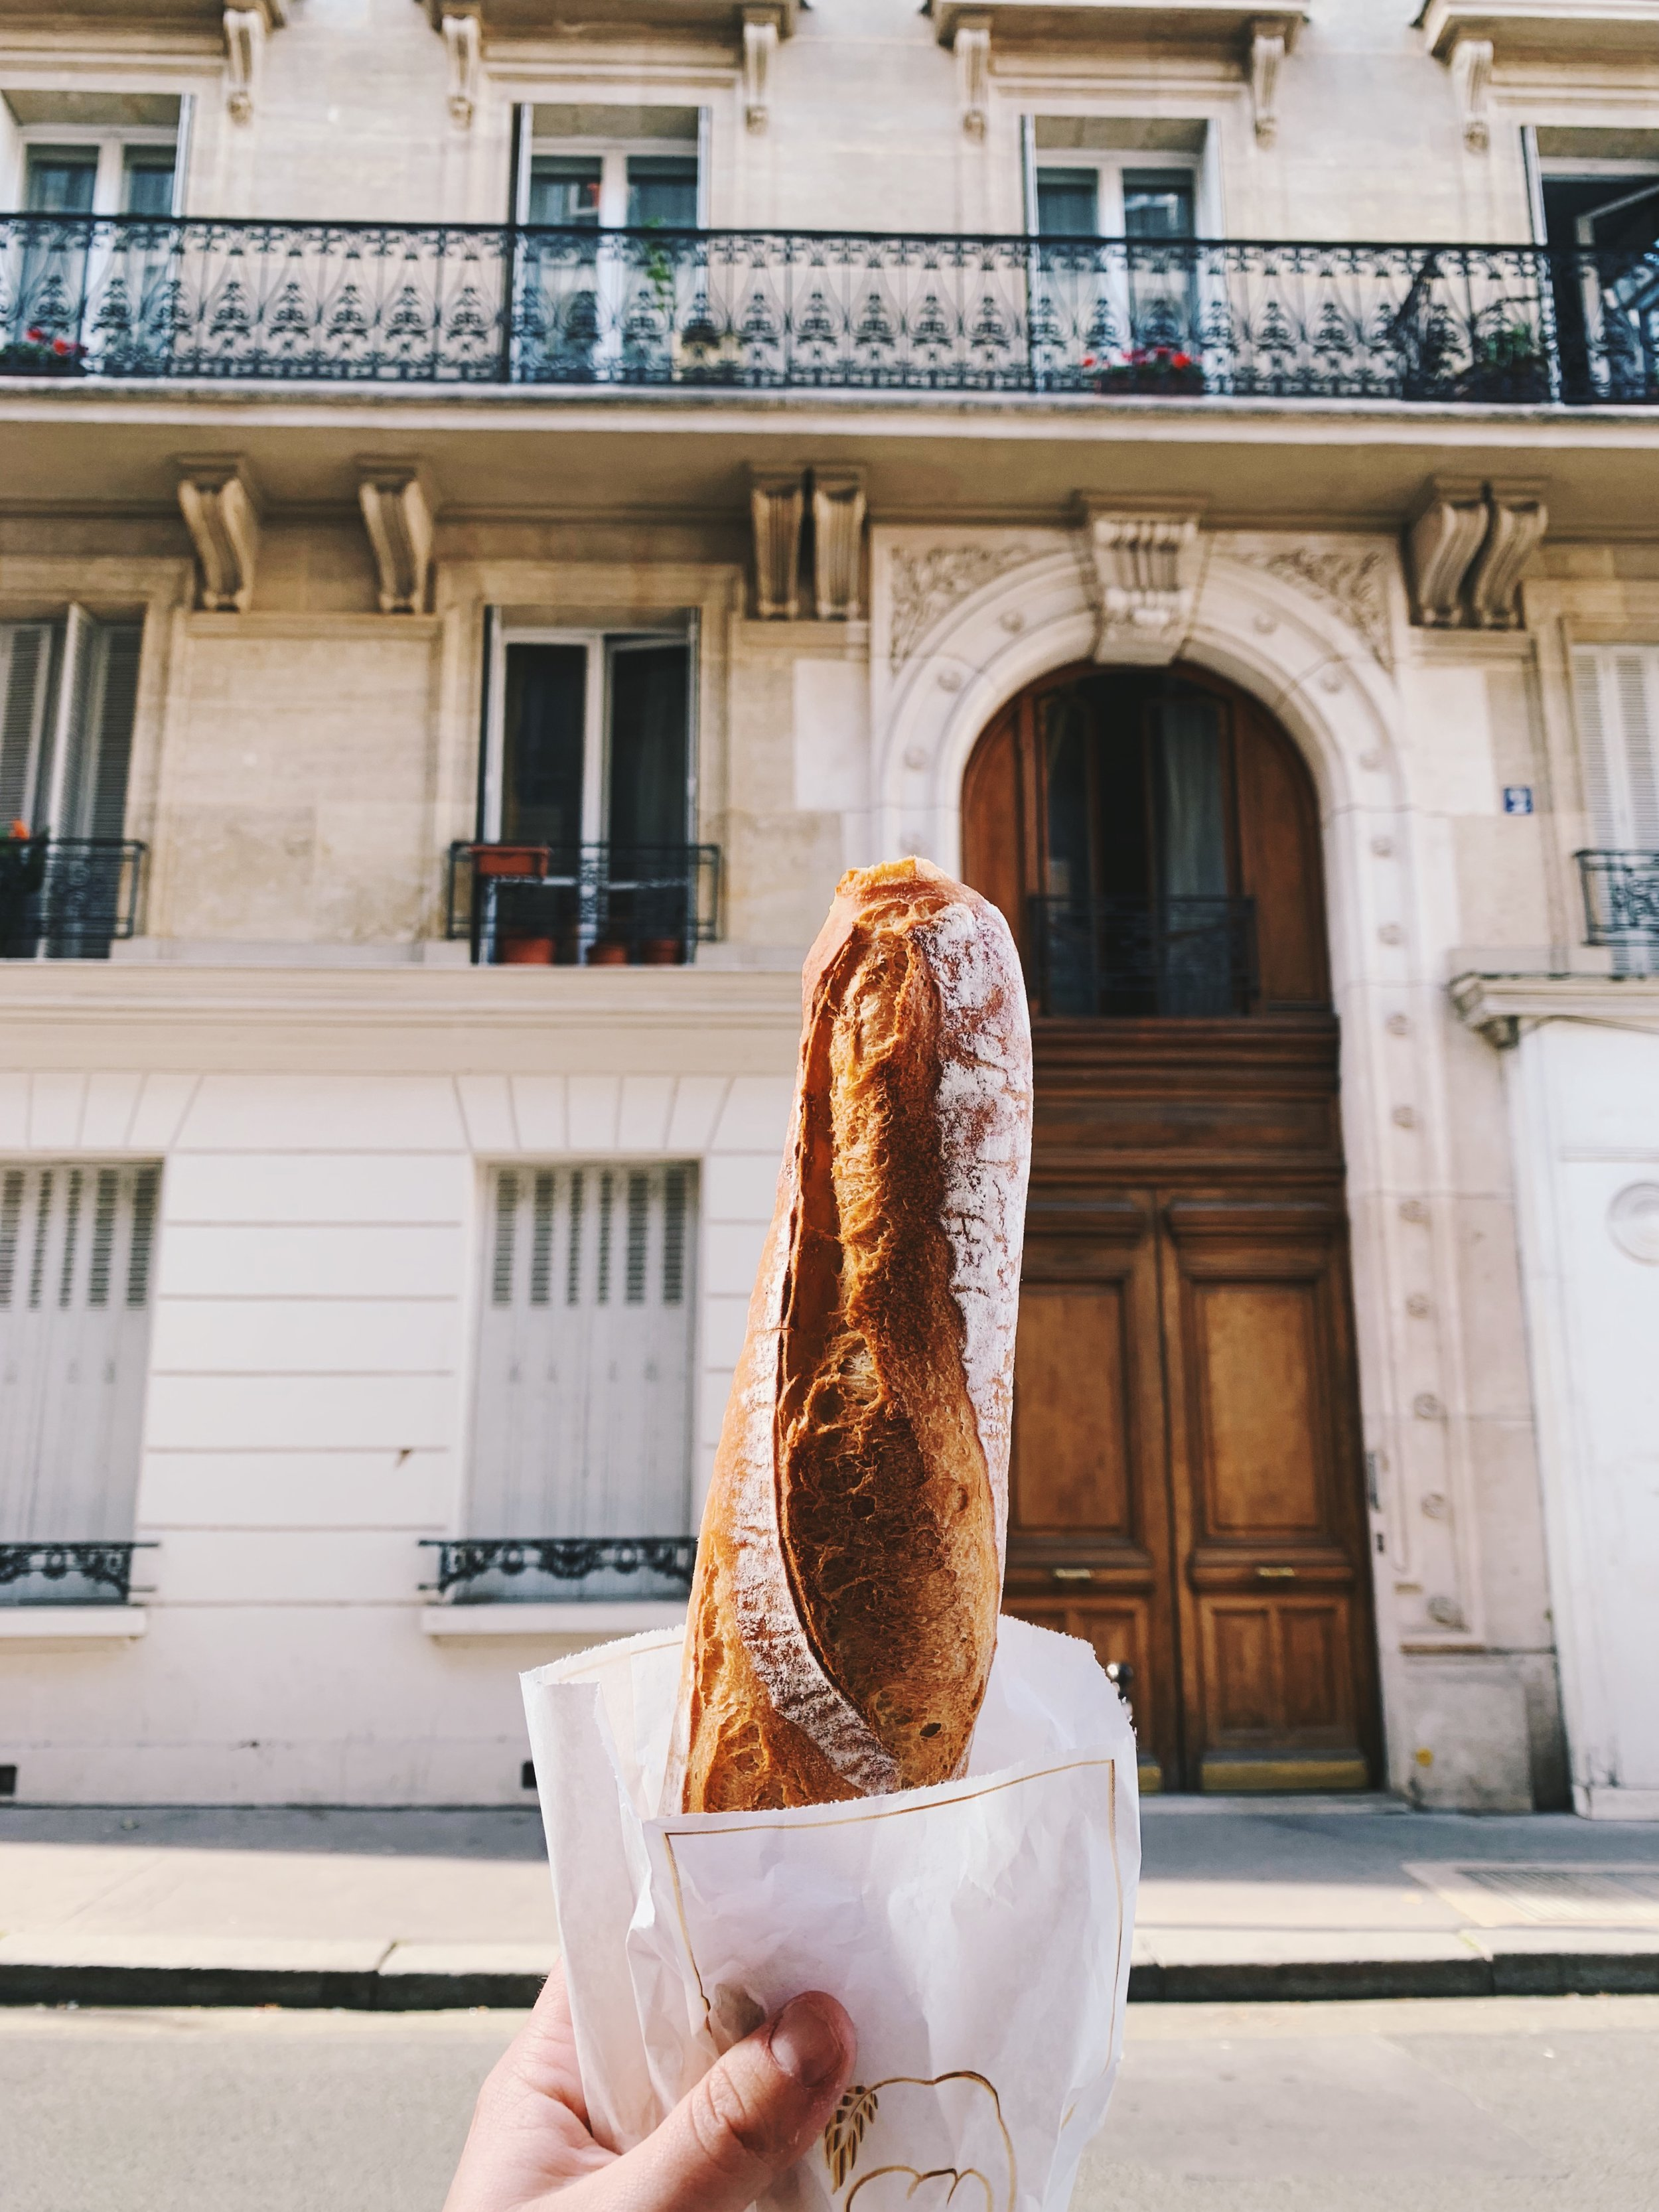 Supposedly the best baguette in Paris at M'Seddi's Boulangerie.